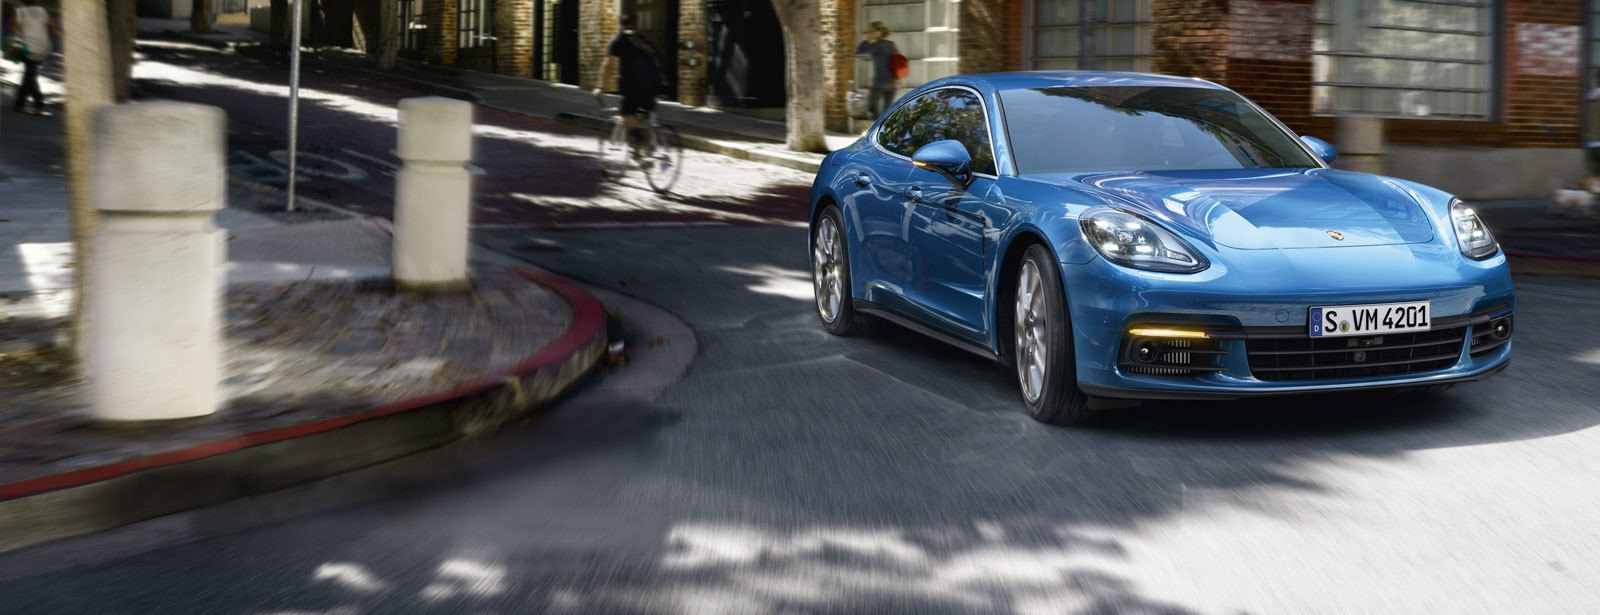 Porsche - Panamera 4S -